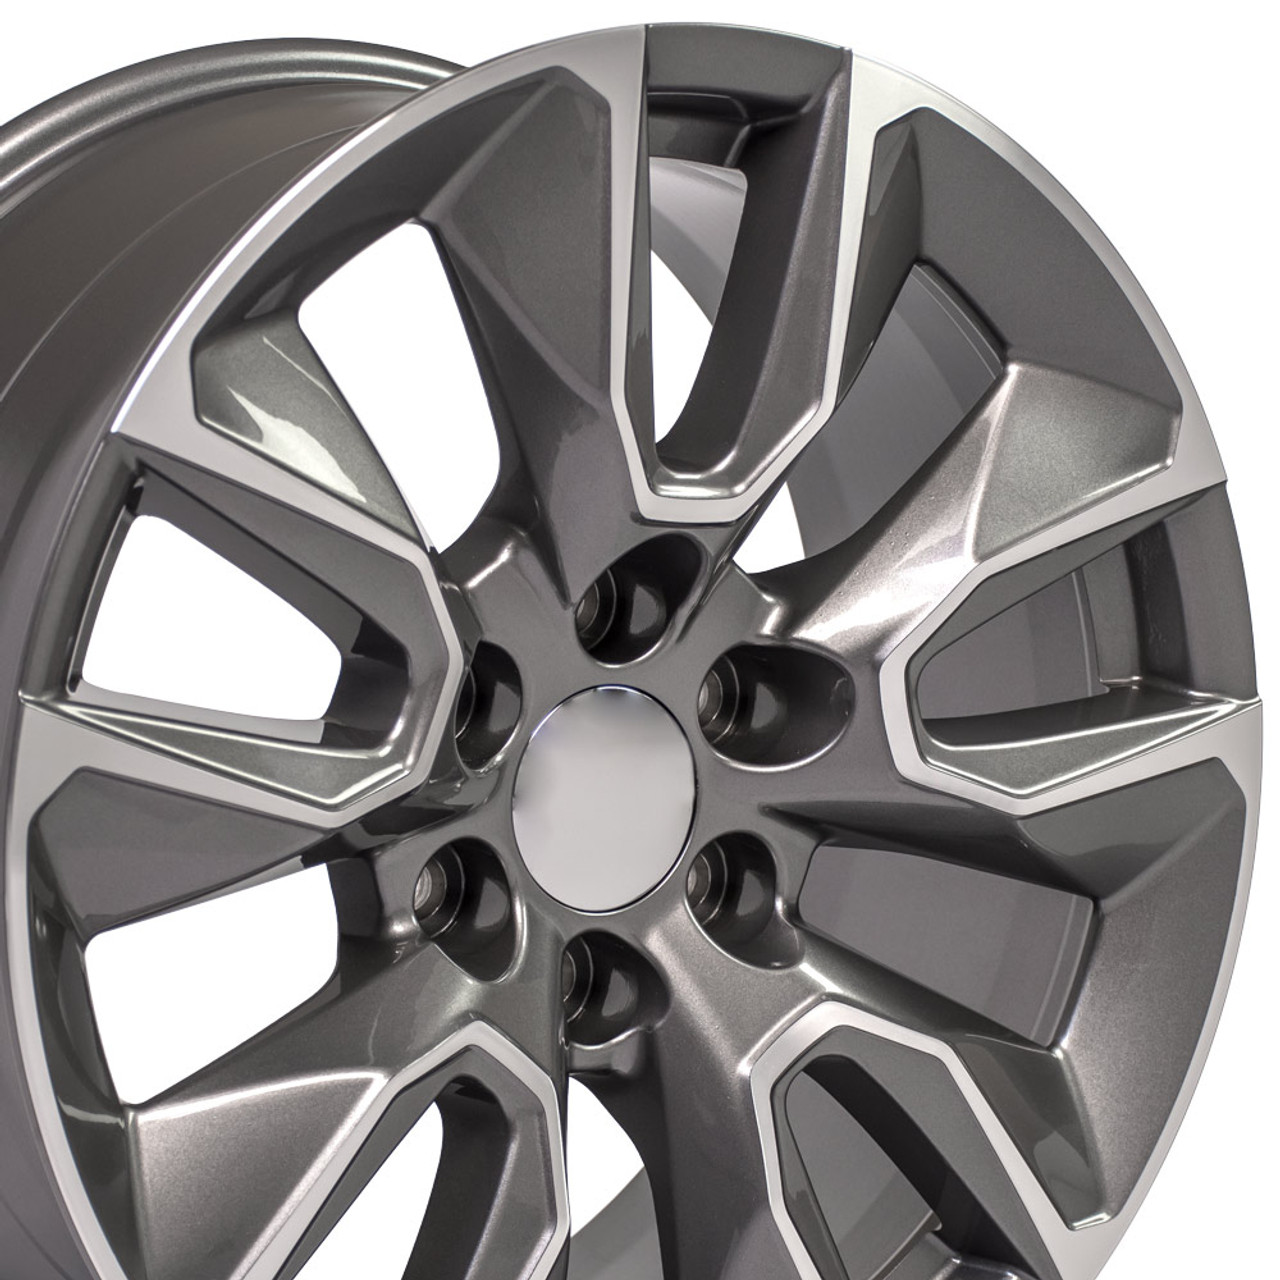 20 Fits Chevy Silverado Gunmetal Machined Face Rst Rally Tahoe Wheels 20x9 Rims Stock Wheel Solutions